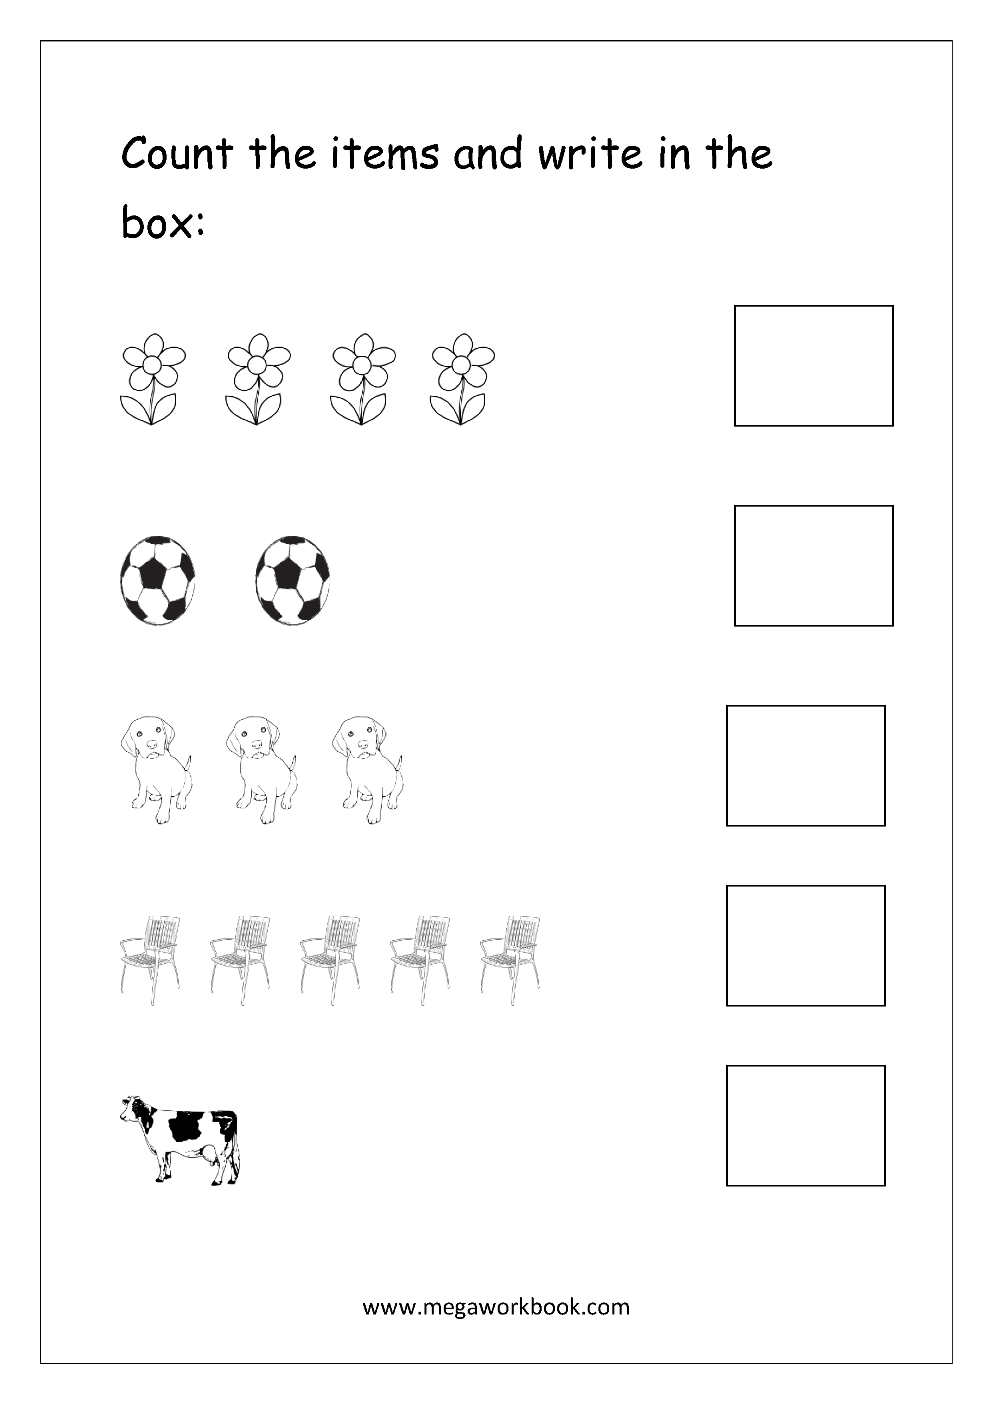 Free Math Worksheets - Number Counting - MegaWorkbook